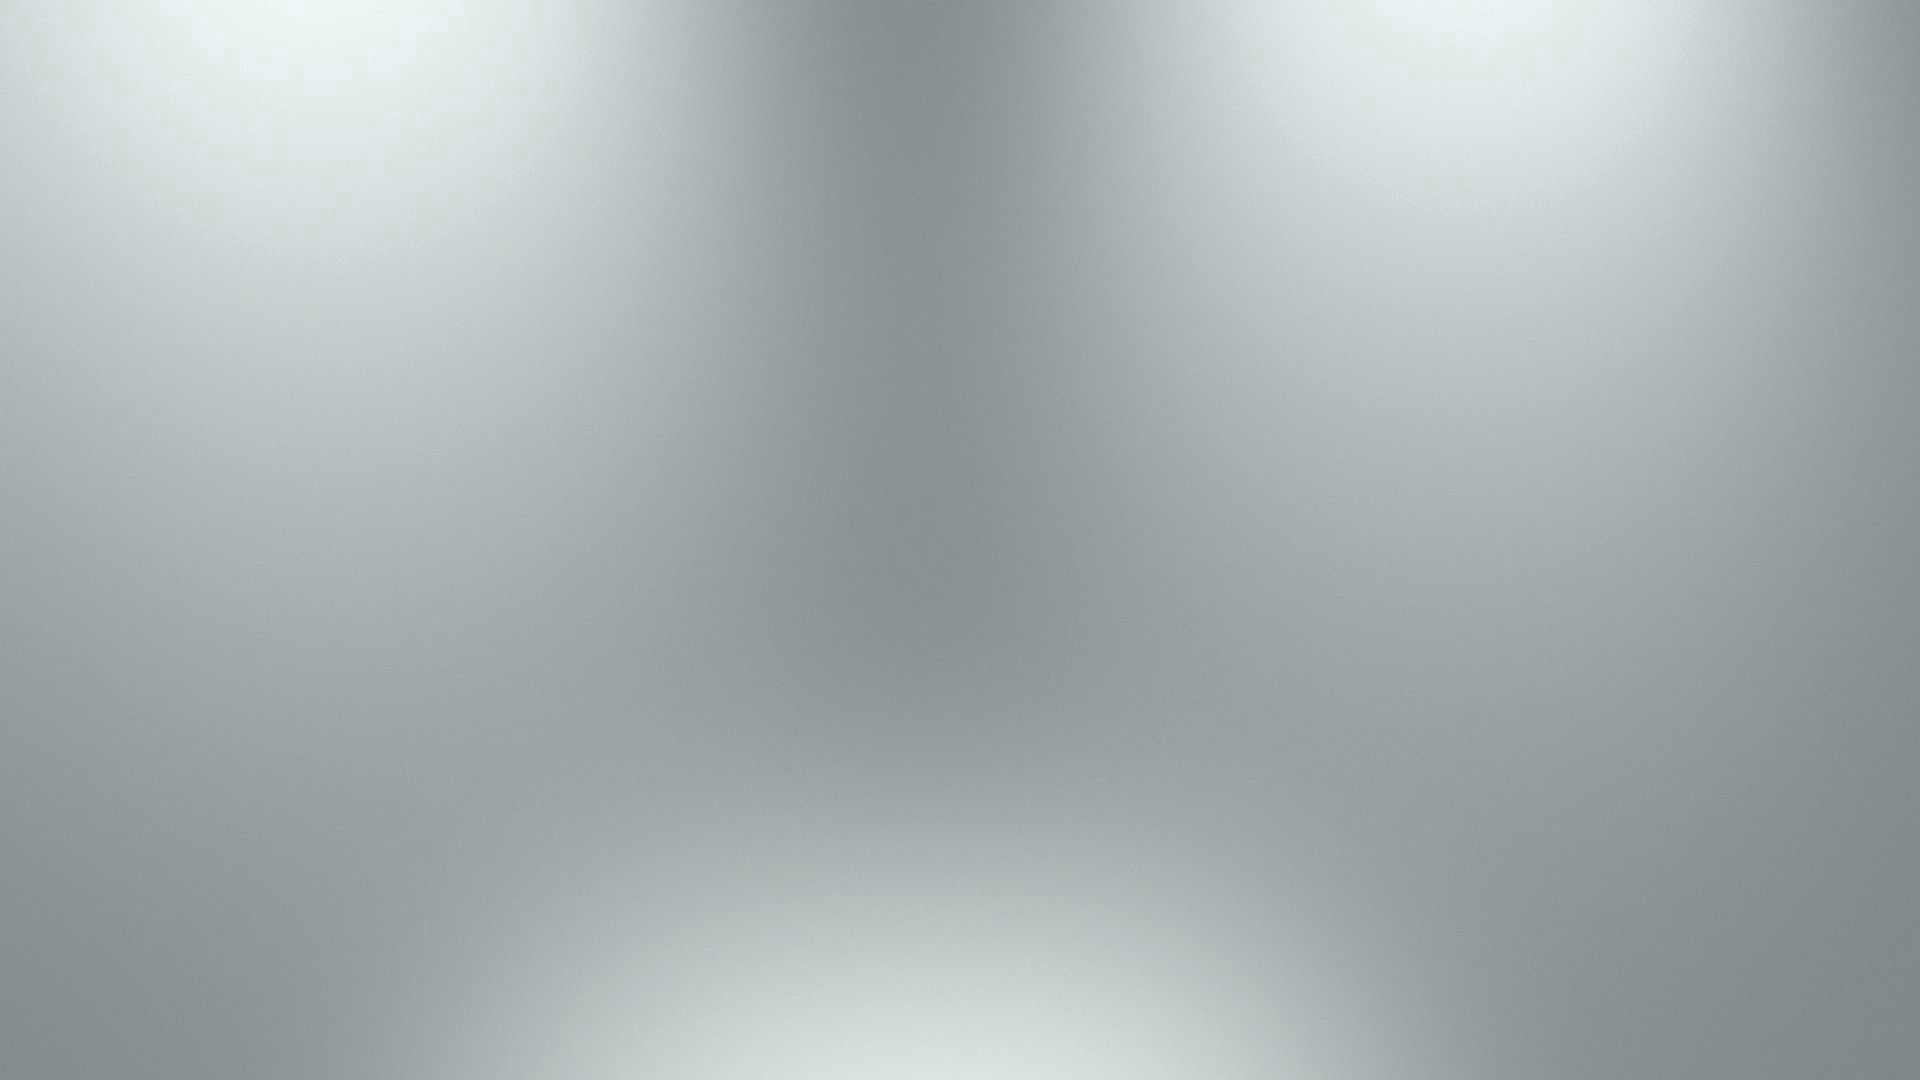 138578 download wallpaper Abstract, Background, Grey, Light Coloured, Light screensavers and pictures for free